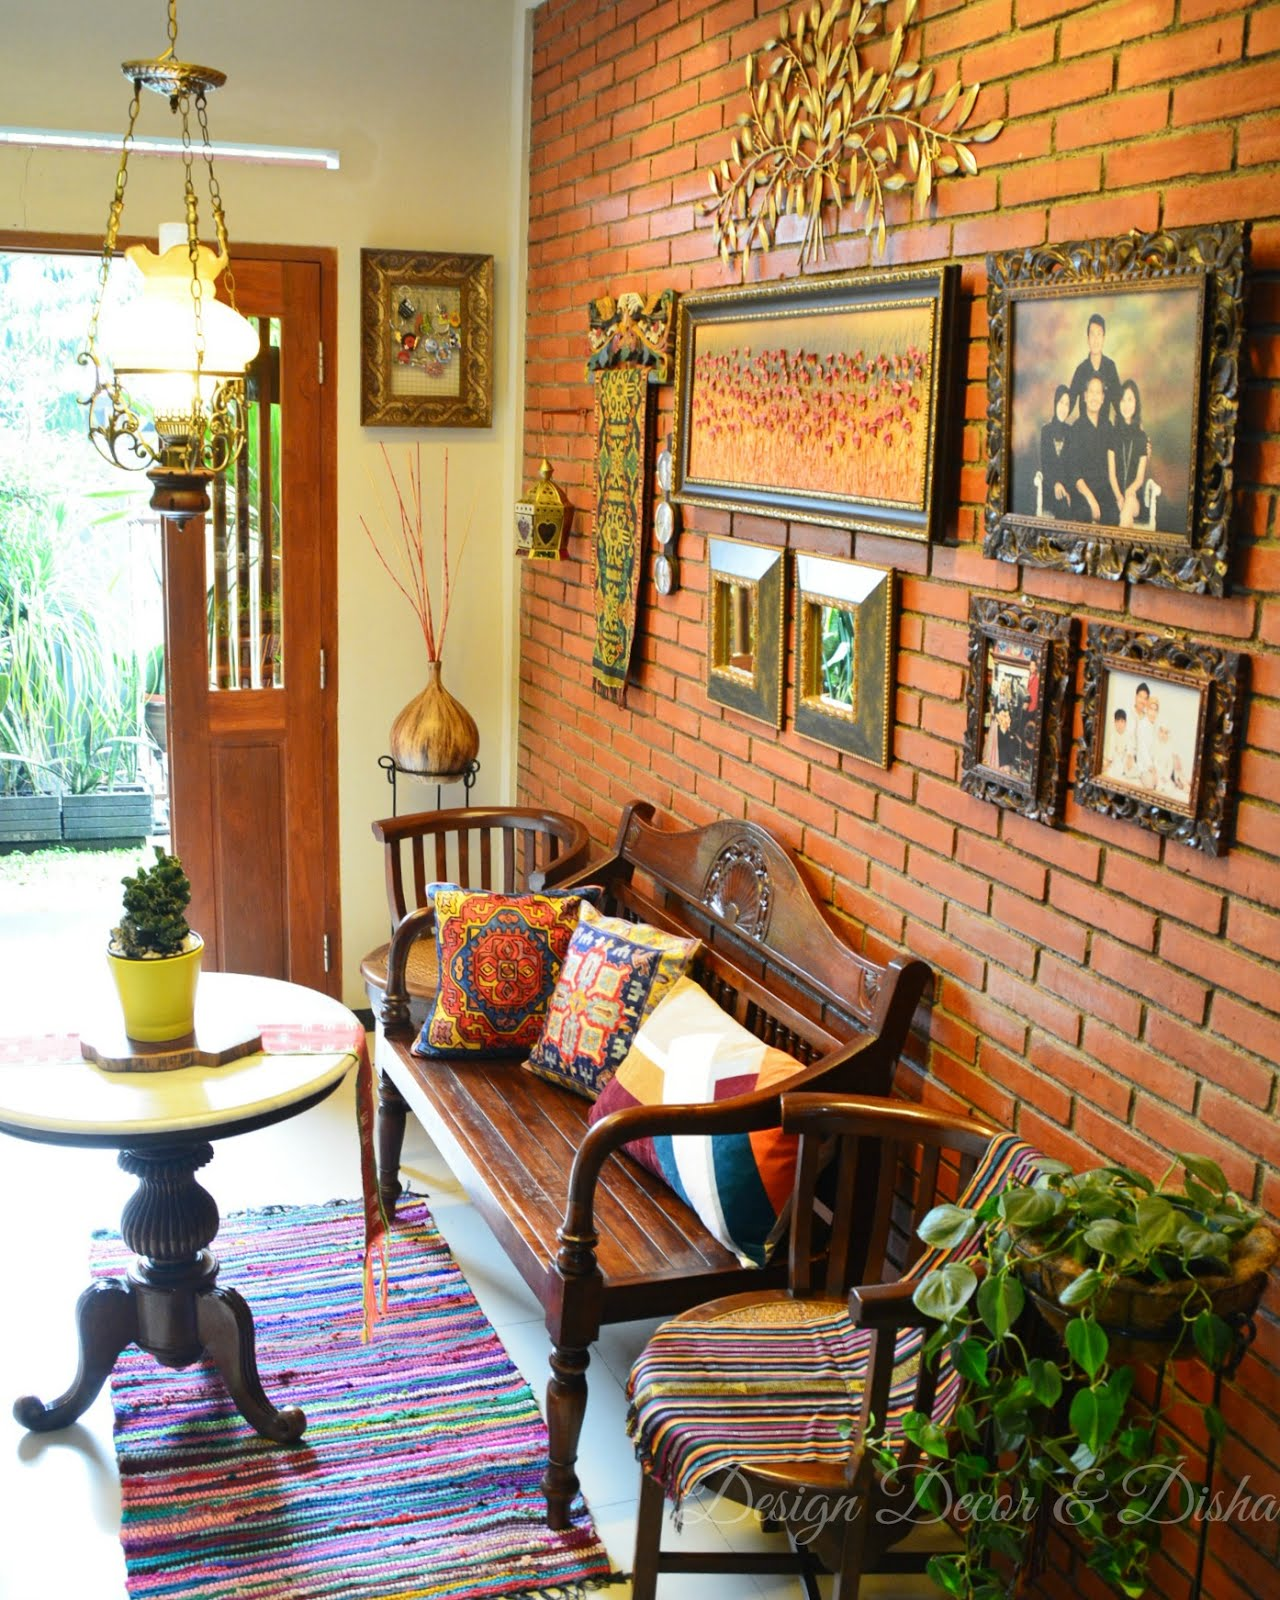 Design Decor Disha An Indian Design Decor Blog Home Tour Windya Wardhani